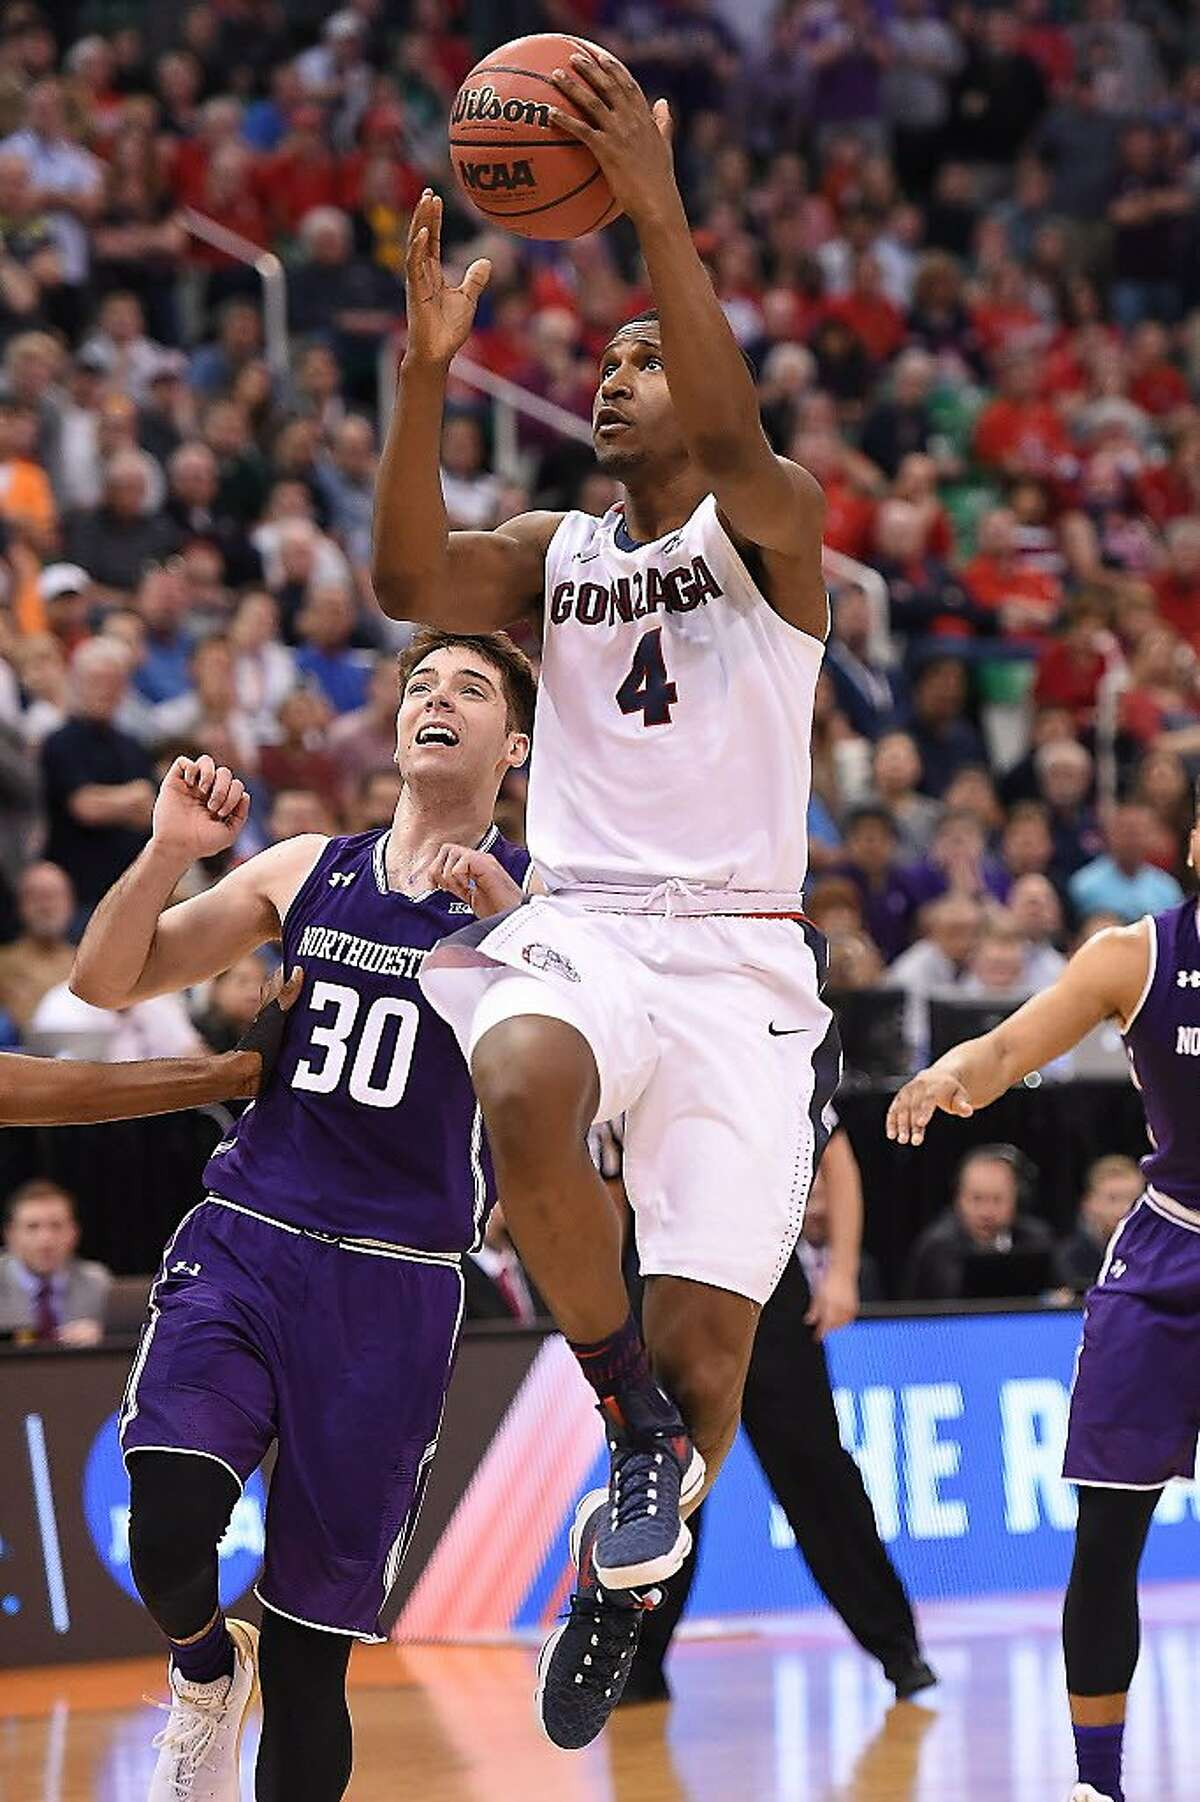 SALT LAKE CITY, UT - MARCH 18: Jordan Mathews #4 of the Gonzaga Bulldogs attempts a shot against the Northwestern Wildcats during the second round of the 2017 NCAA Men's Basketball Tournament at Vivint Smart Home Arena on March 18, 2017 in Salt Lake City, Utah. (Photo by Gene Sweeney Jr./Getty Images)